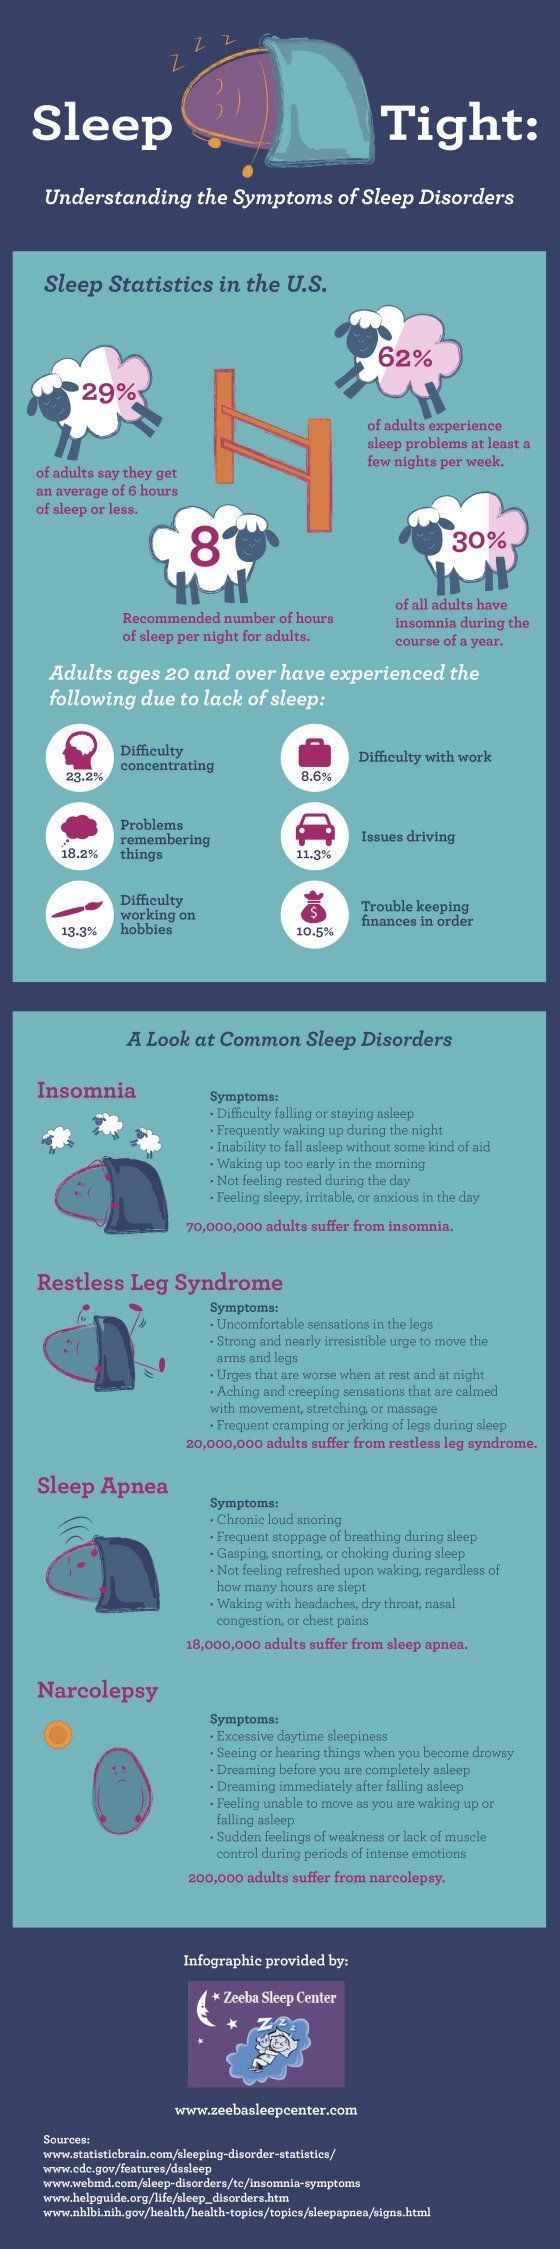 A good overview of some symptoms of sleep disorders!